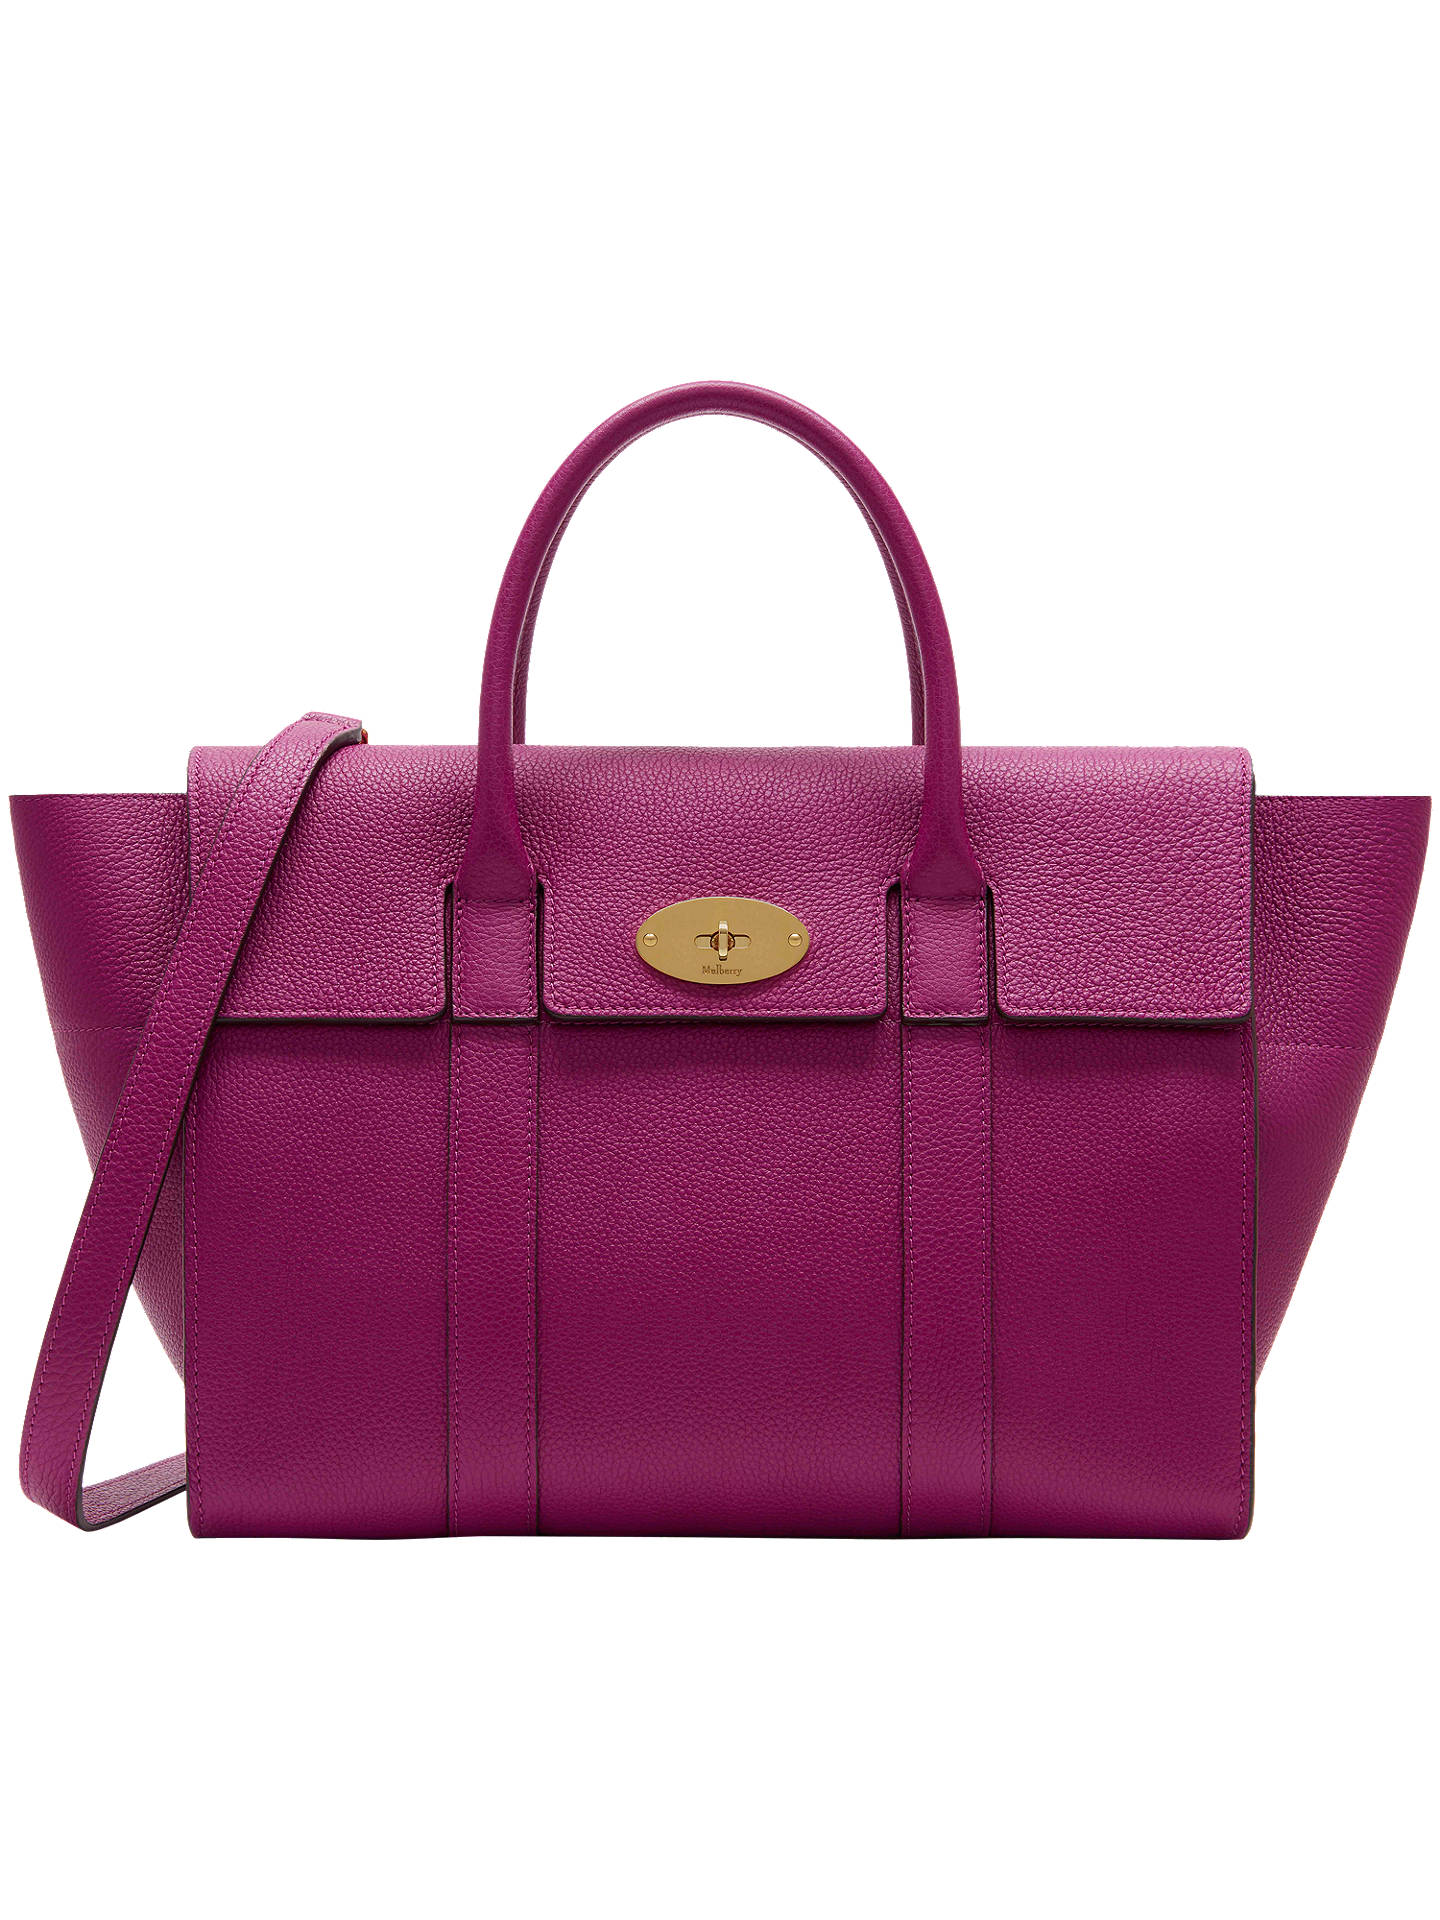 cc6c2a02d7 Mulberry Bayswater Strap Small Classic Grain Bag at John Lewis ...